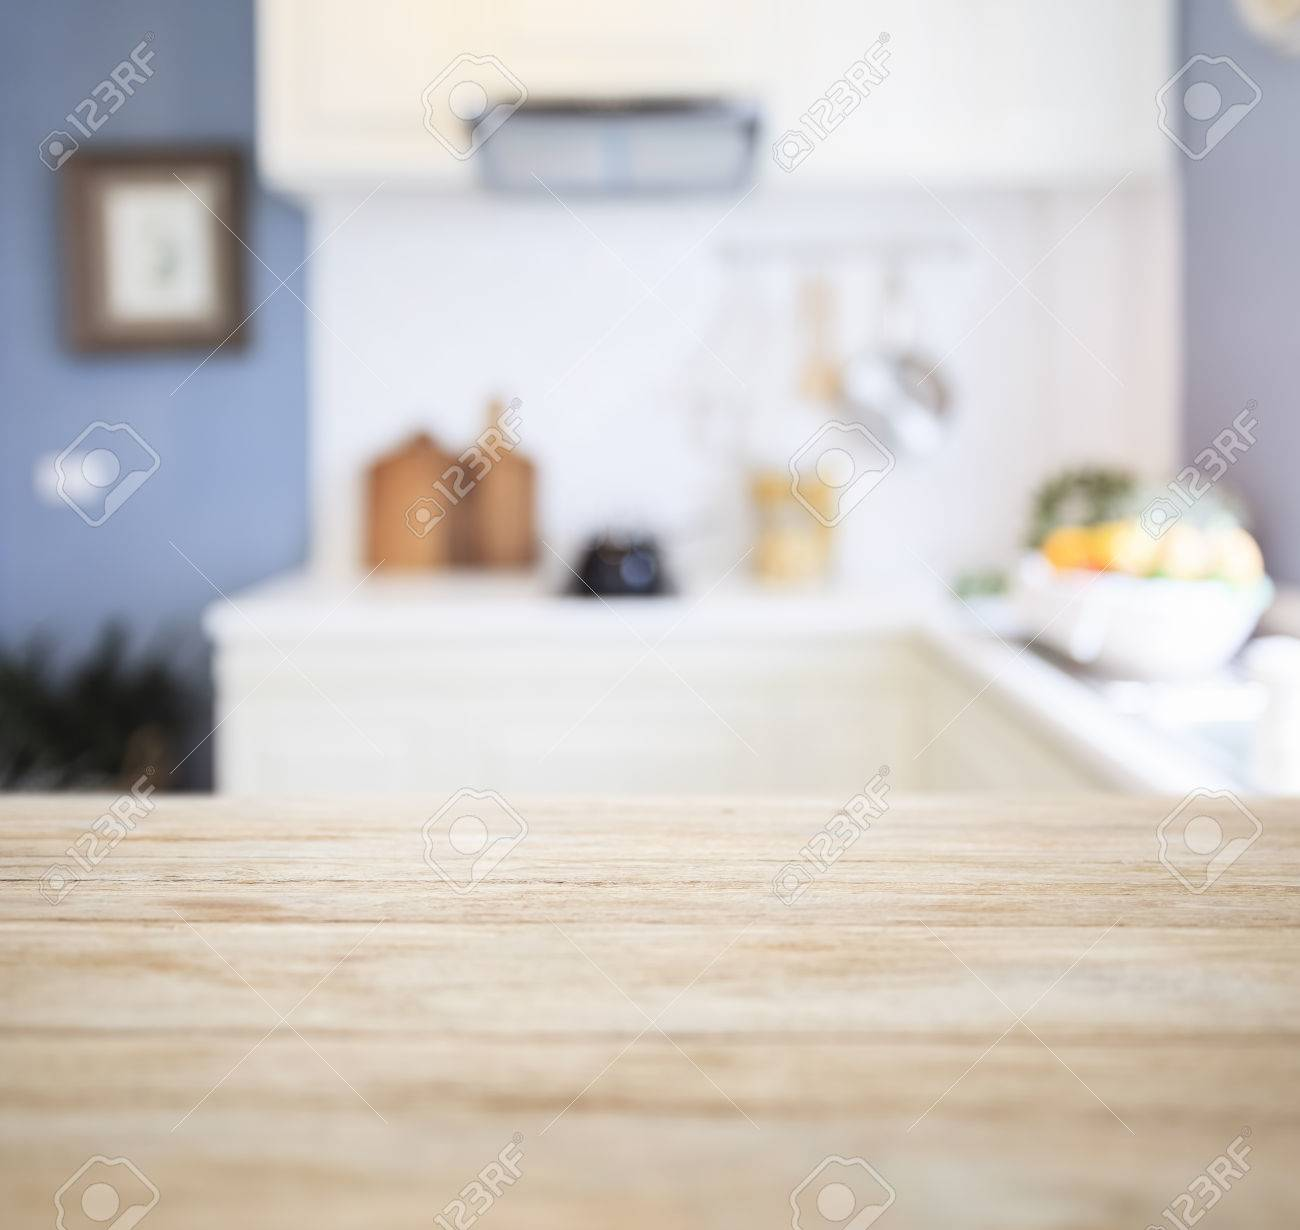 Kitchen Table Top Background table top counter with blurred kitchen pantry home interior